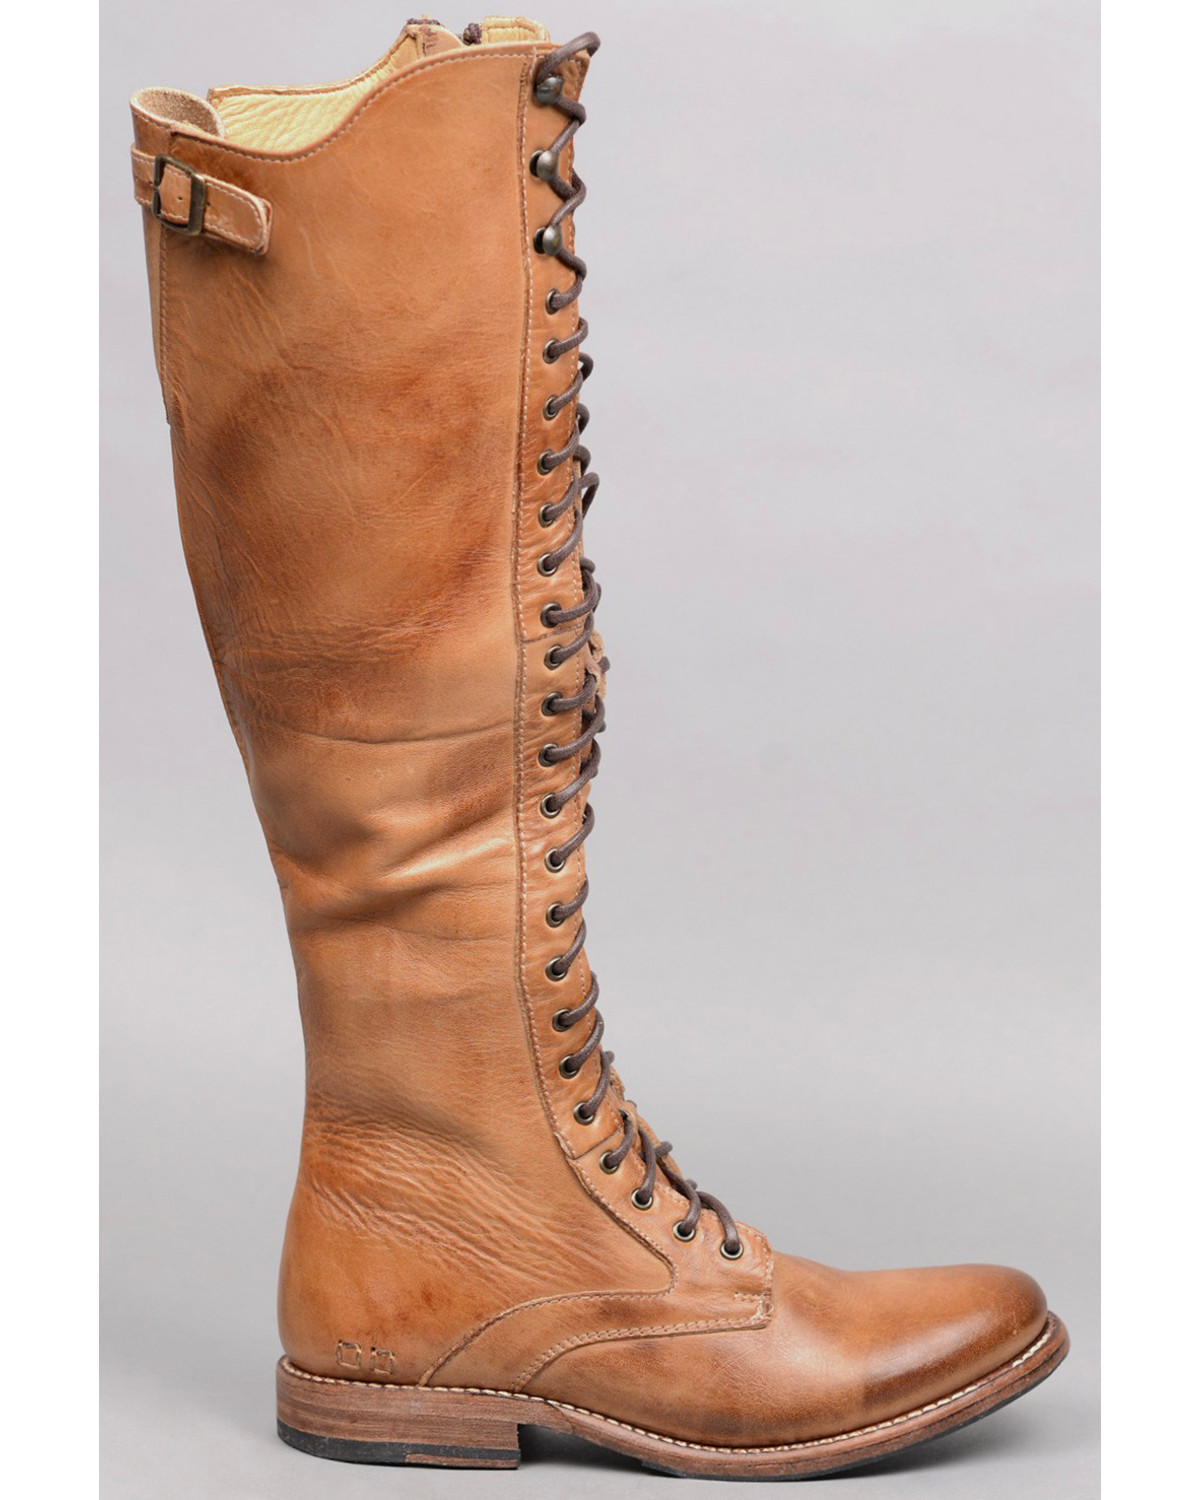 55bb7f50d9963 Zoomed Image Bed Stu Women's Della Tall Lace-Up Boots - Round Toe , Tan, hi